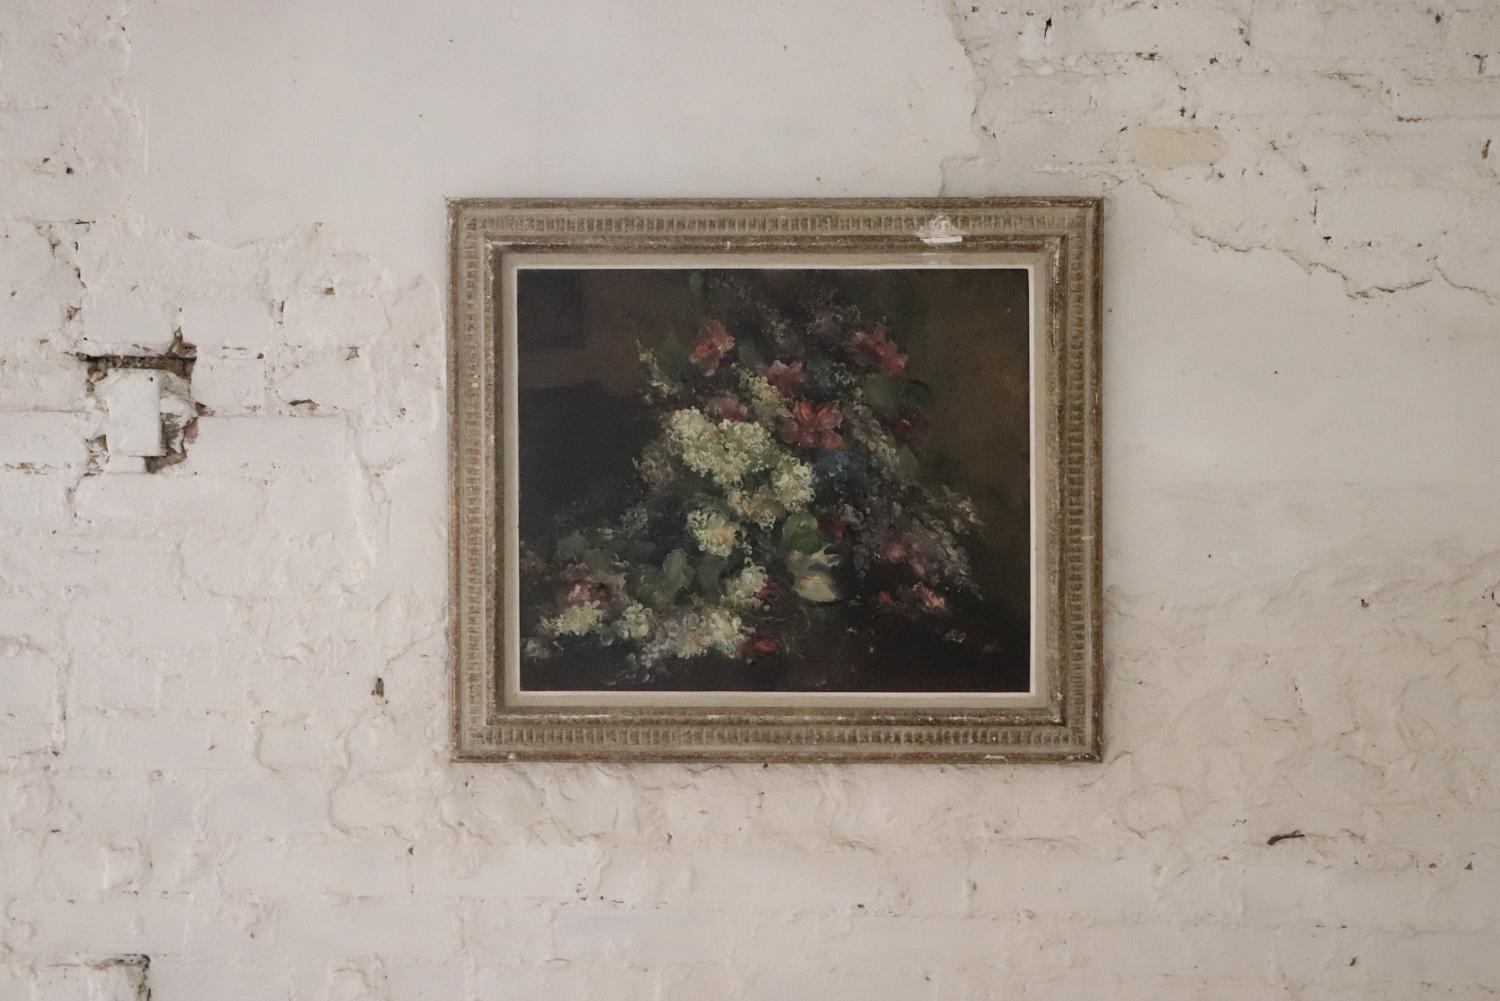 Floral framed French 19th century oil painting